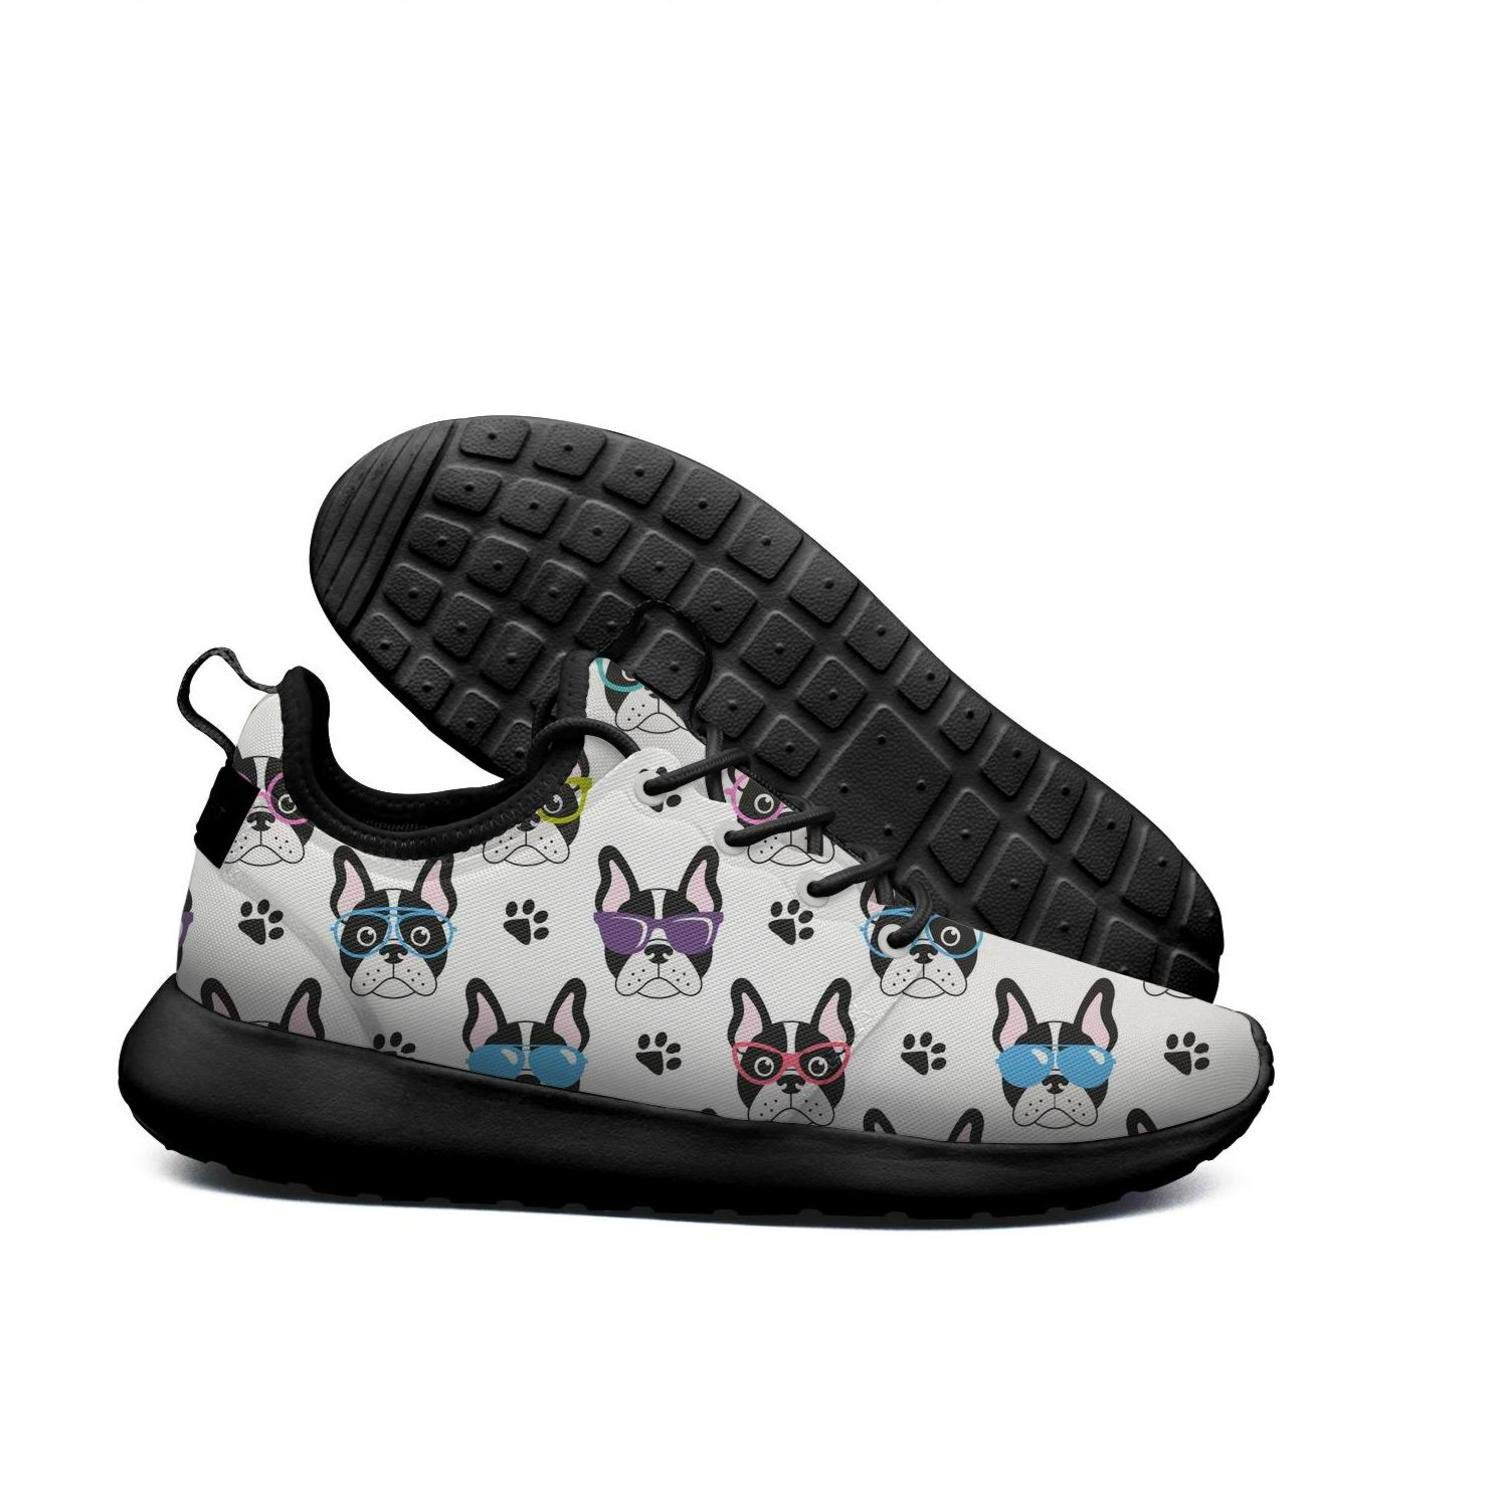 AKDJDS french bulldogs with glasses white Running Shoe Sneakers Womens Shoes